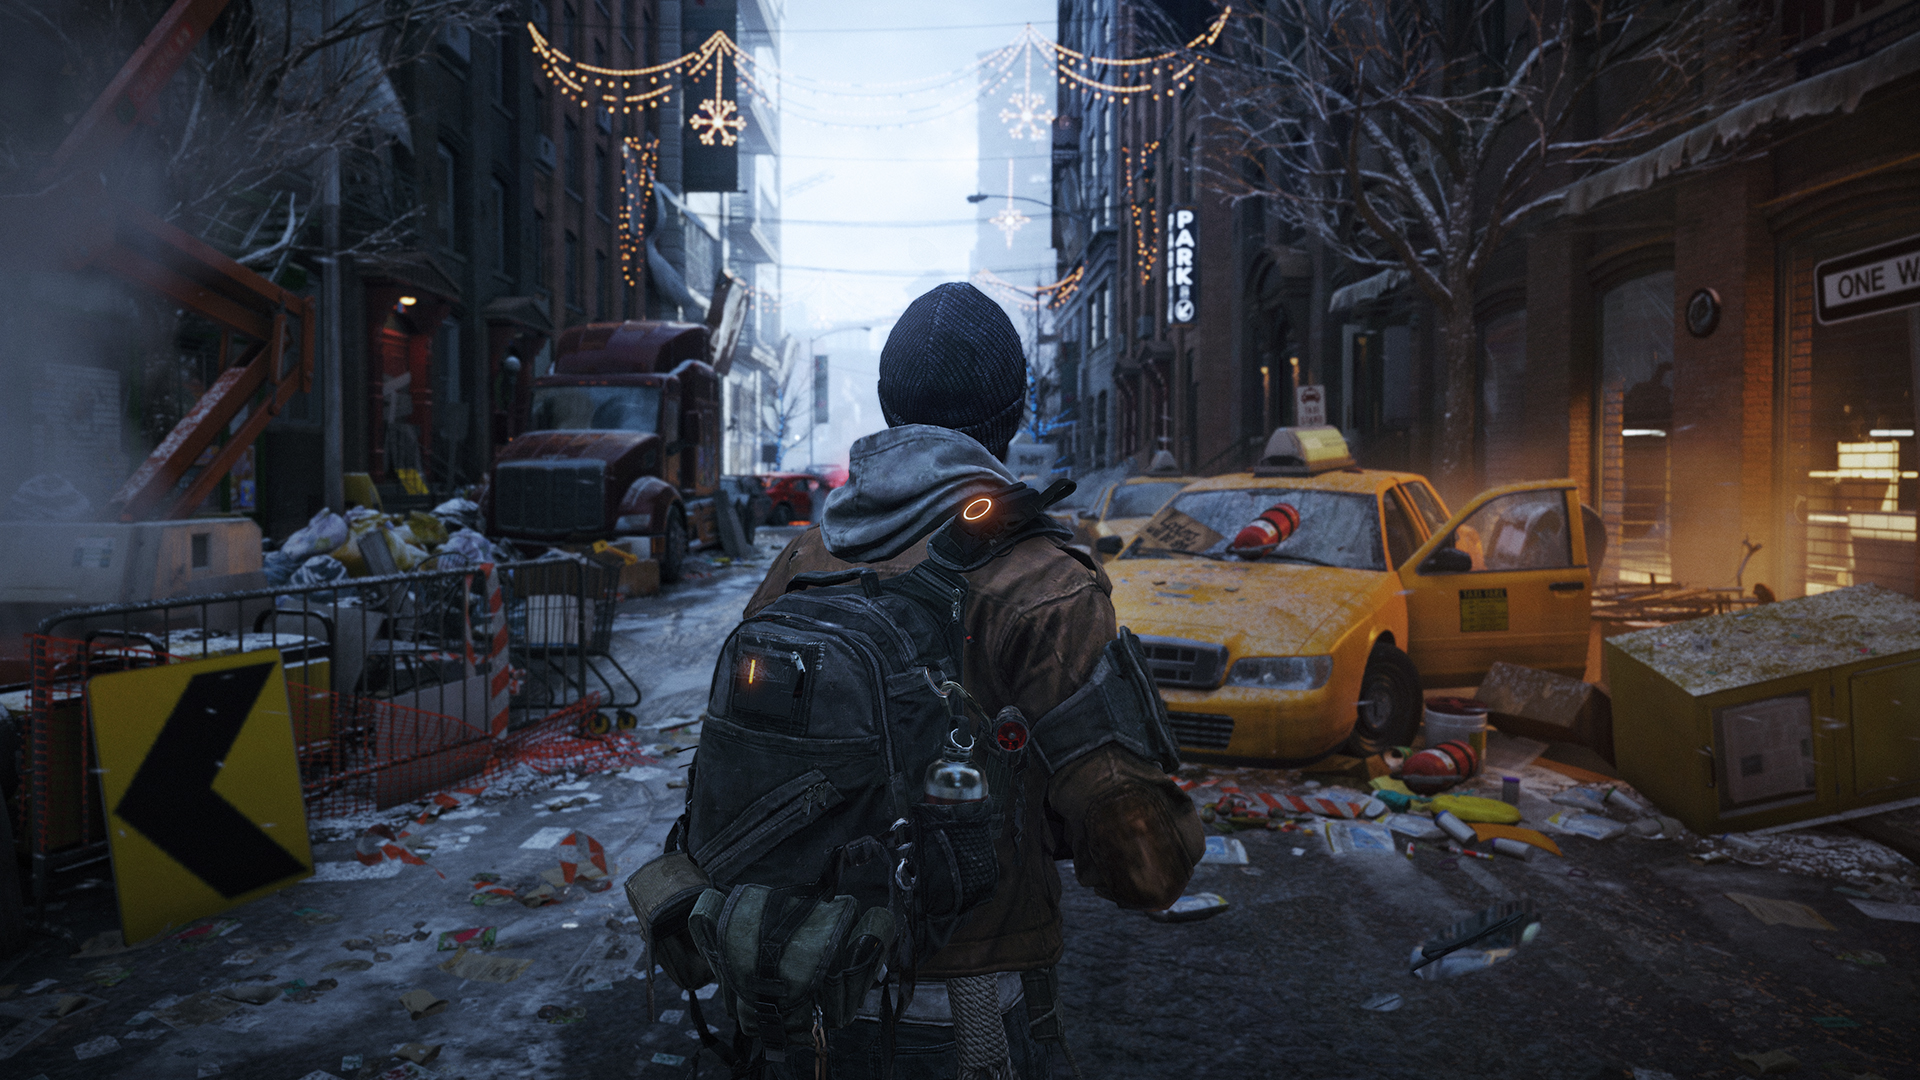 Tom Clancy's The Division screenshot 197